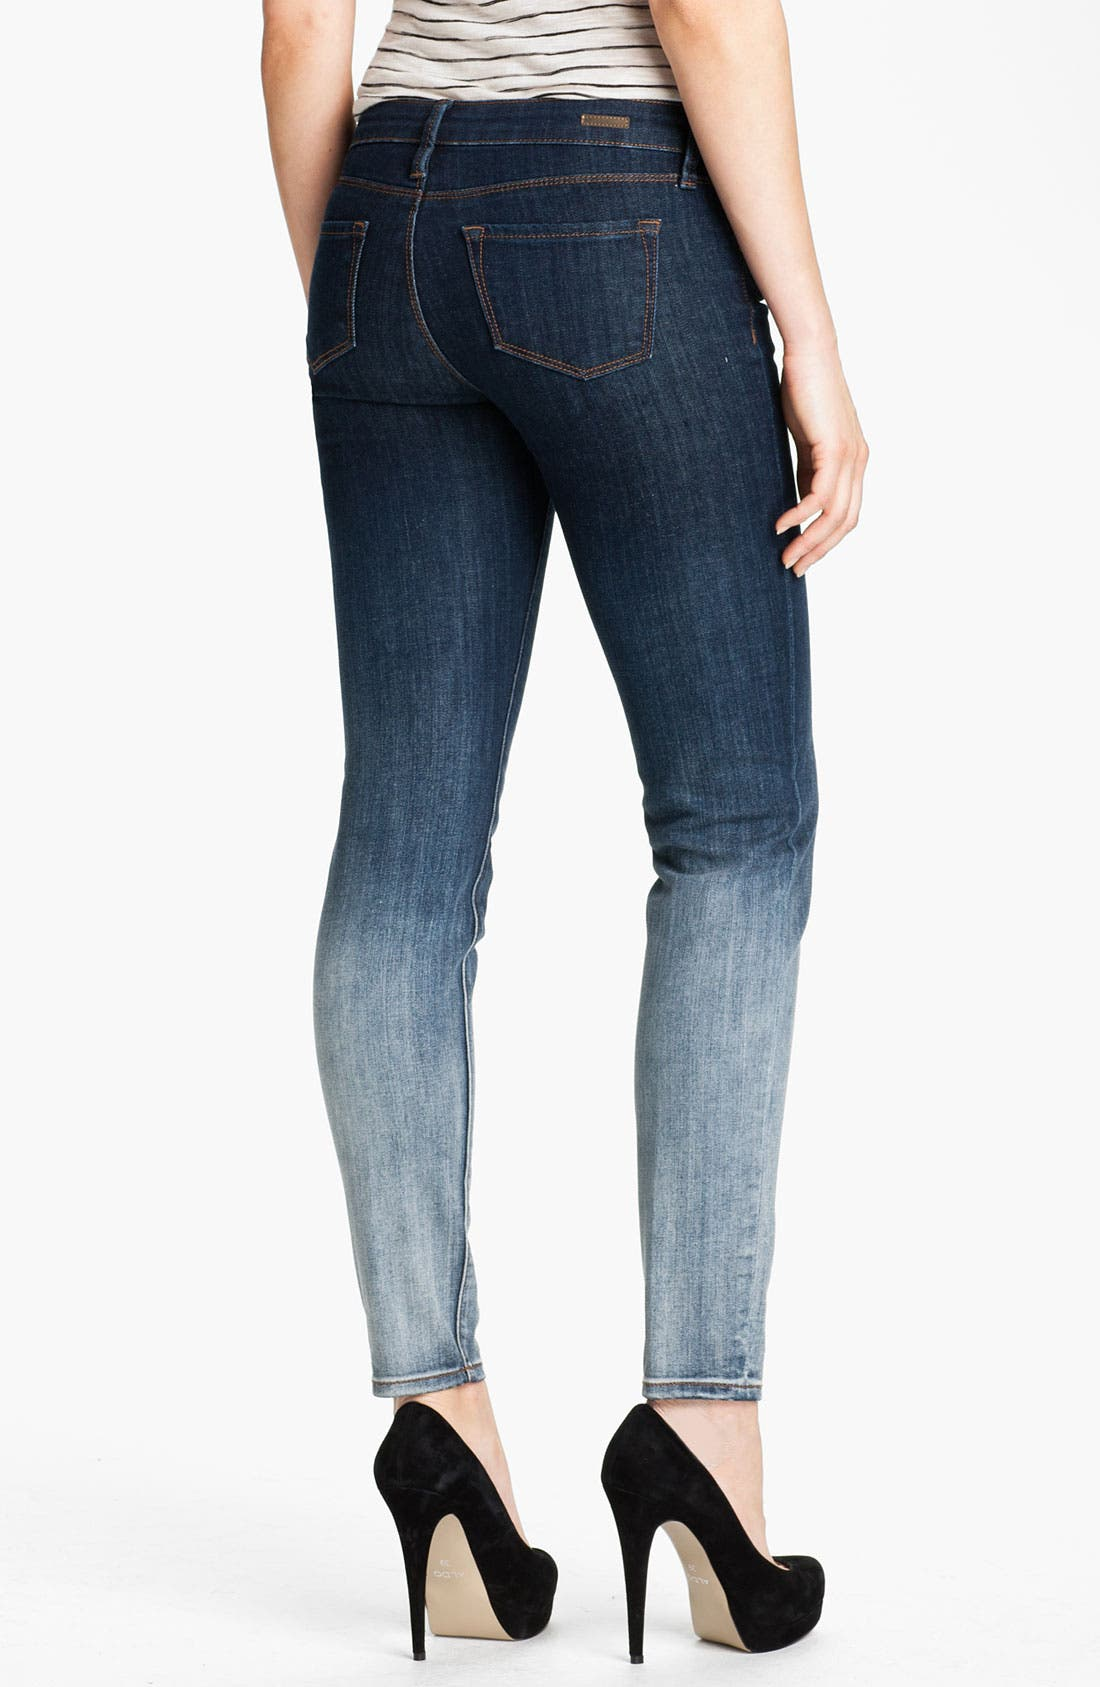 Alternate Image 2  - KUT from the Kloth 'Jennifer' Skinny Jeans (Amazing) (Online Exclusive)